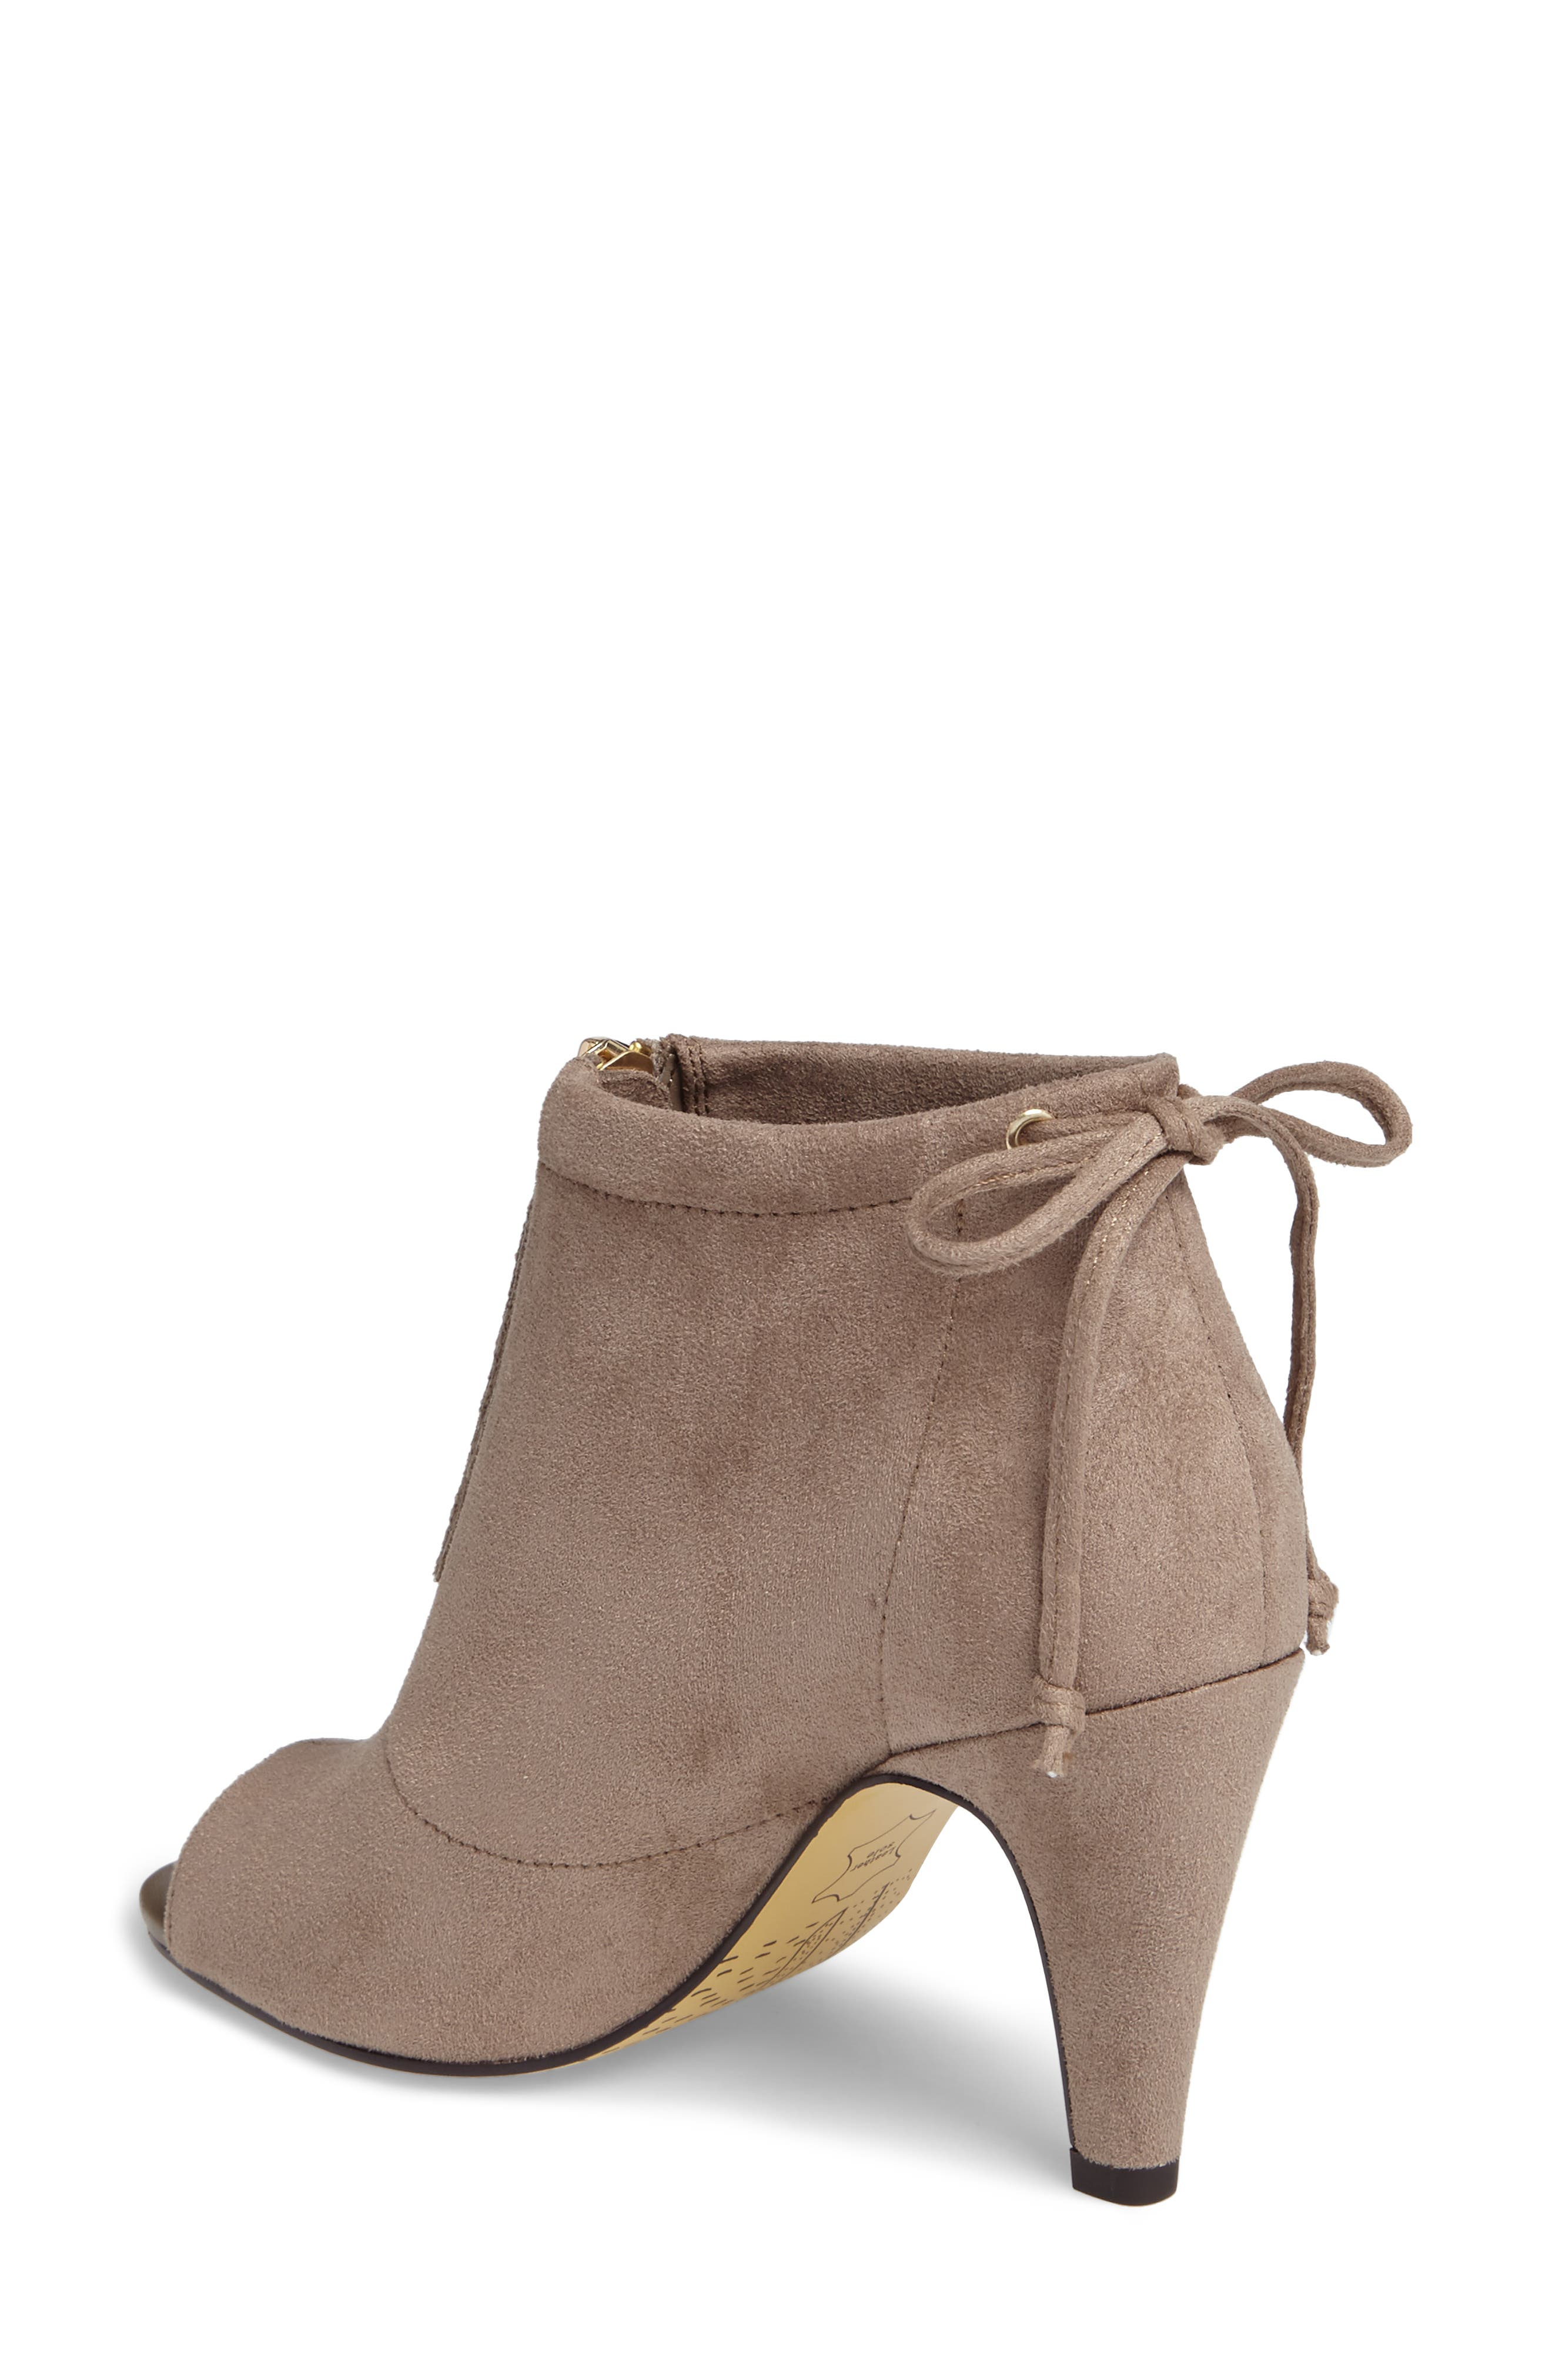 Nicky II Zip Front Bootie,                             Alternate thumbnail 2, color,                             STONE FAUX SUEDE